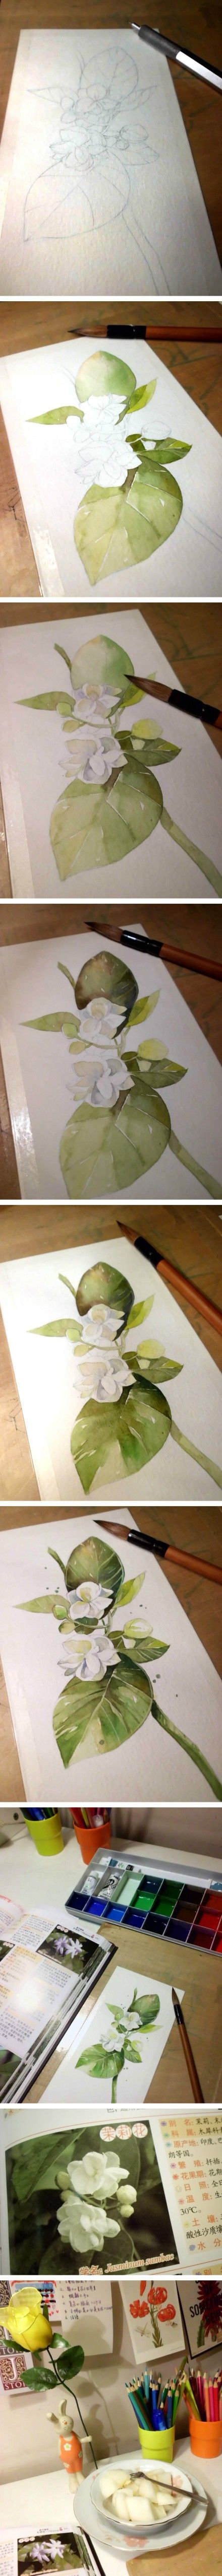 Flowers and leaves lesson